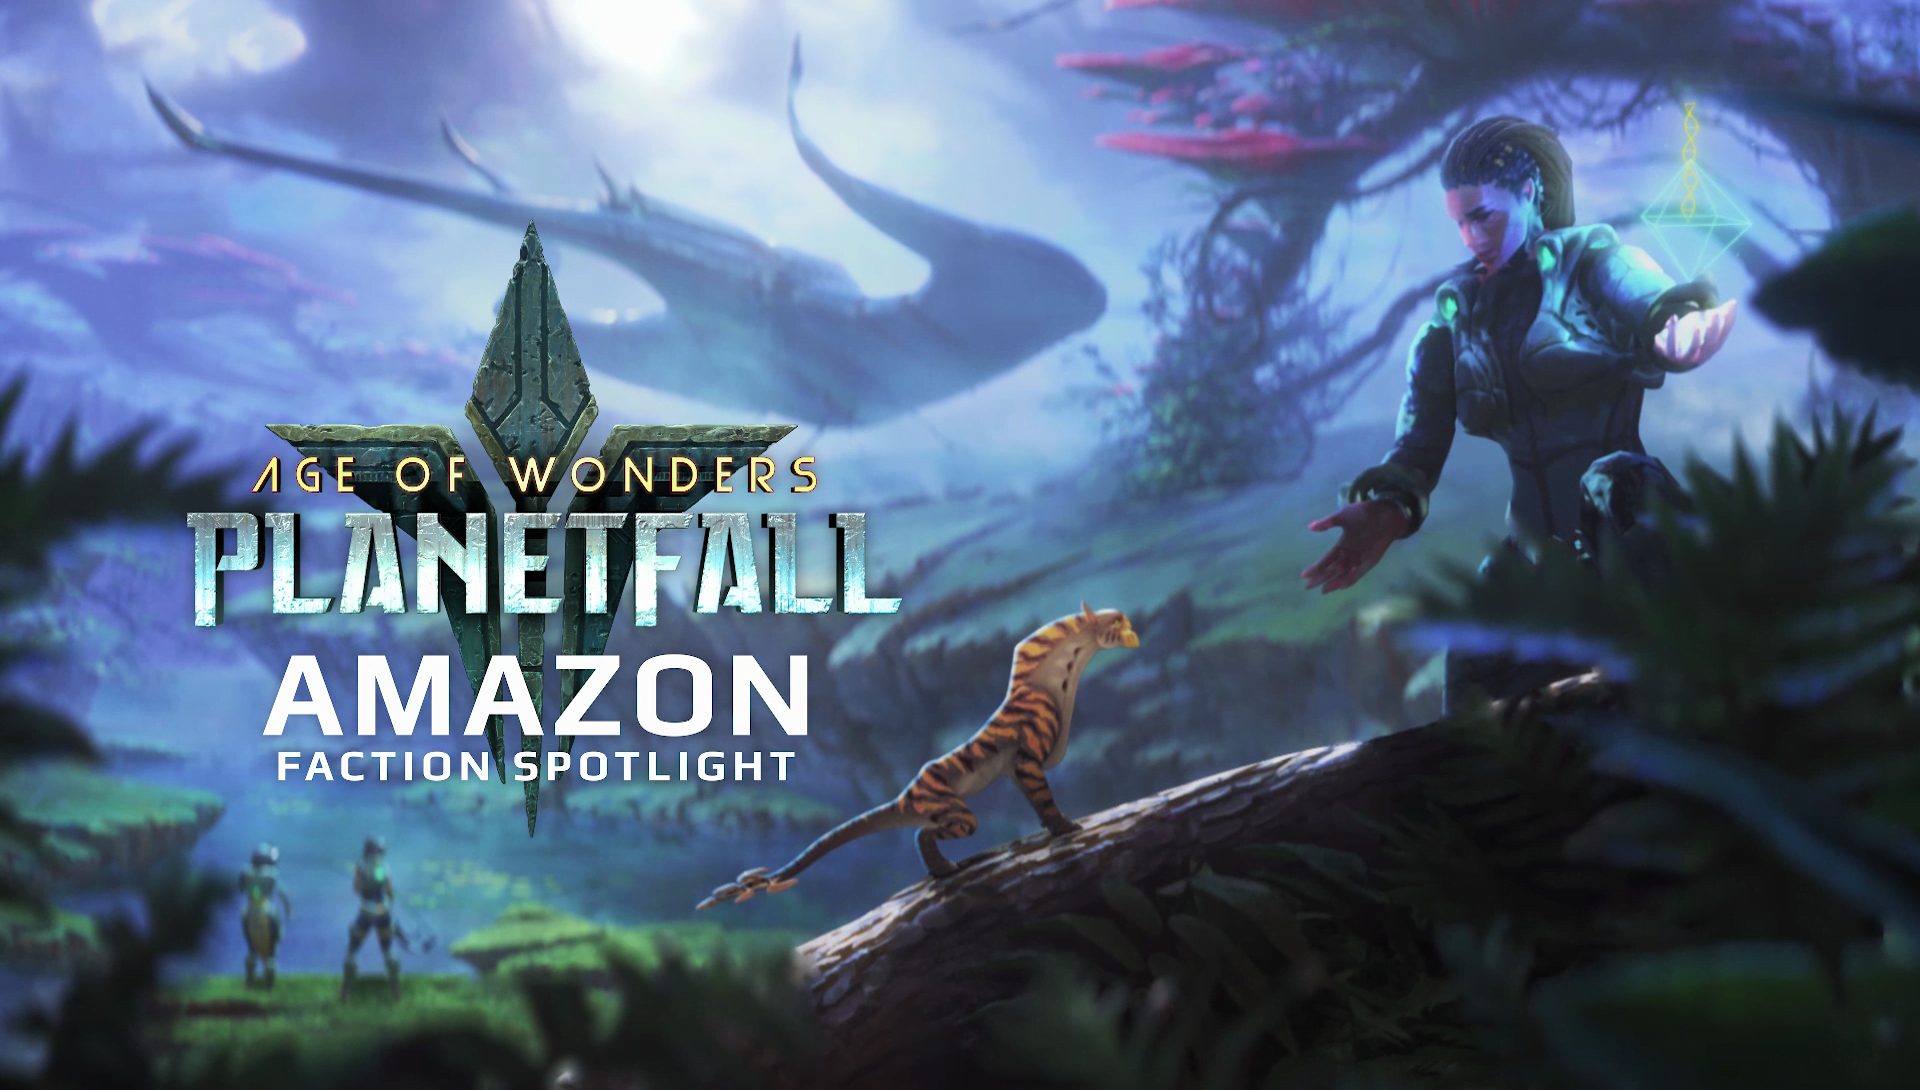 Age of Wonders Planetfall Xbox One Version Full Game Free Download